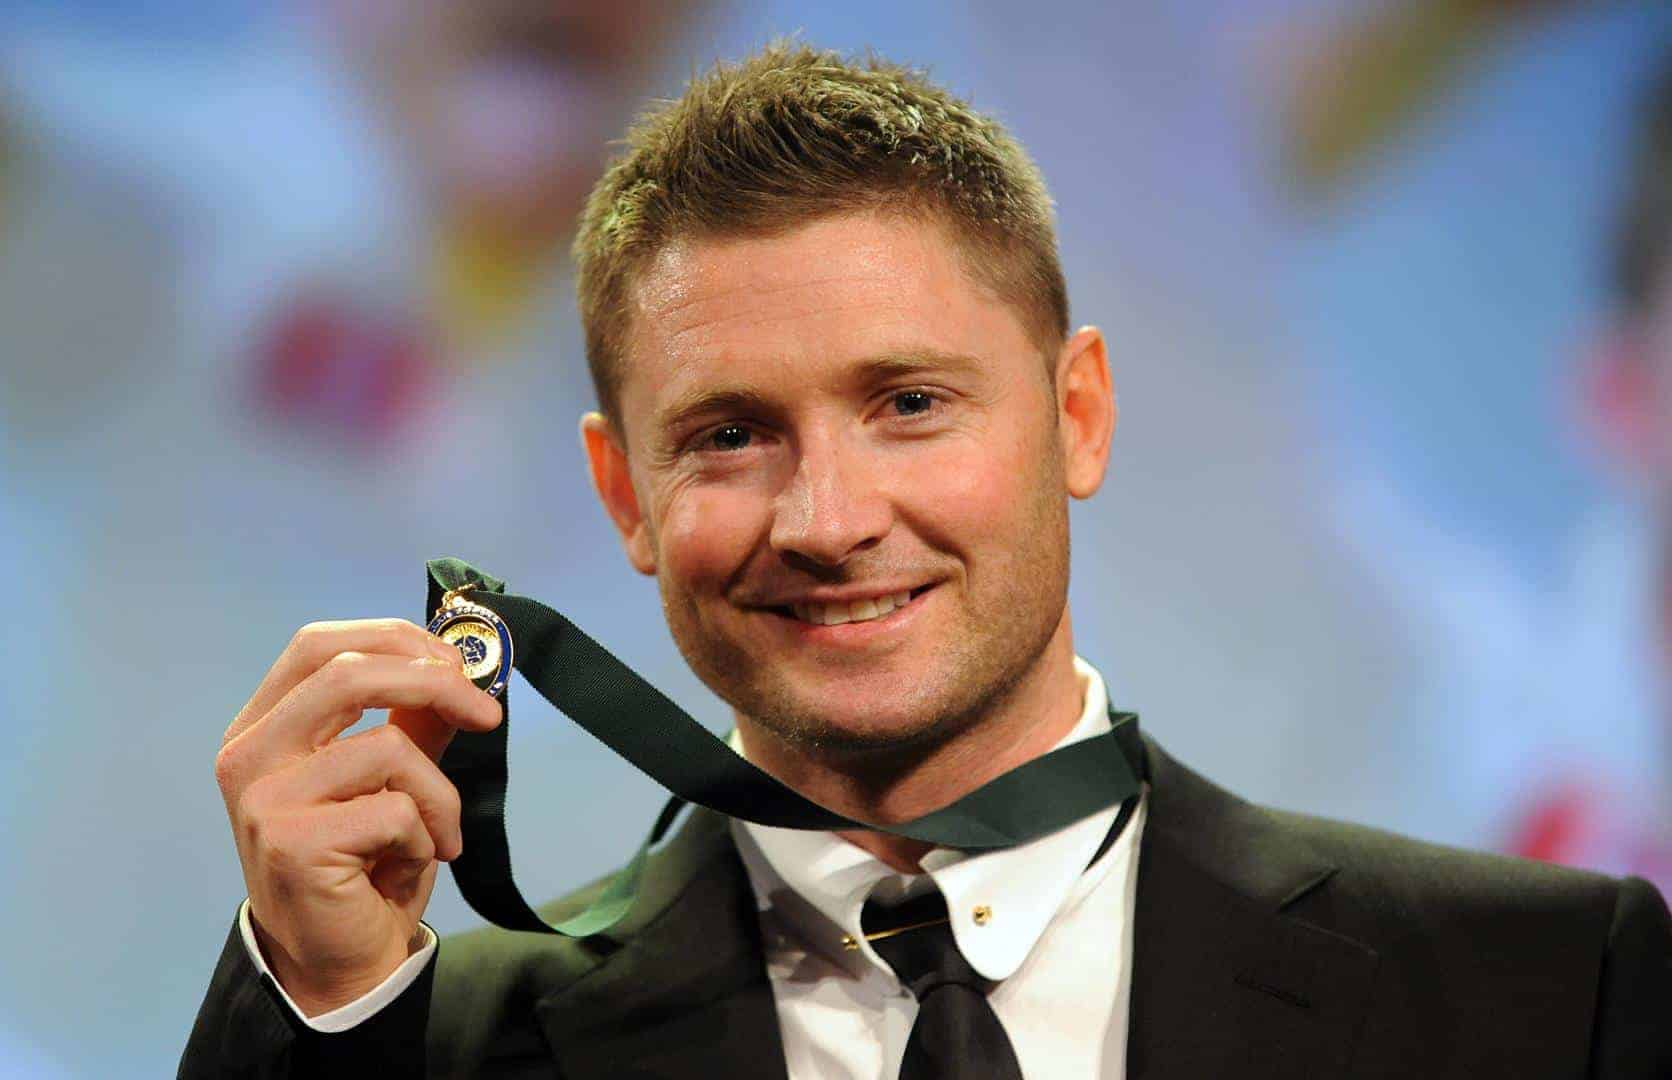 Allan Border Medal: Emotional Michael Clarke Wins Allan Border Medal